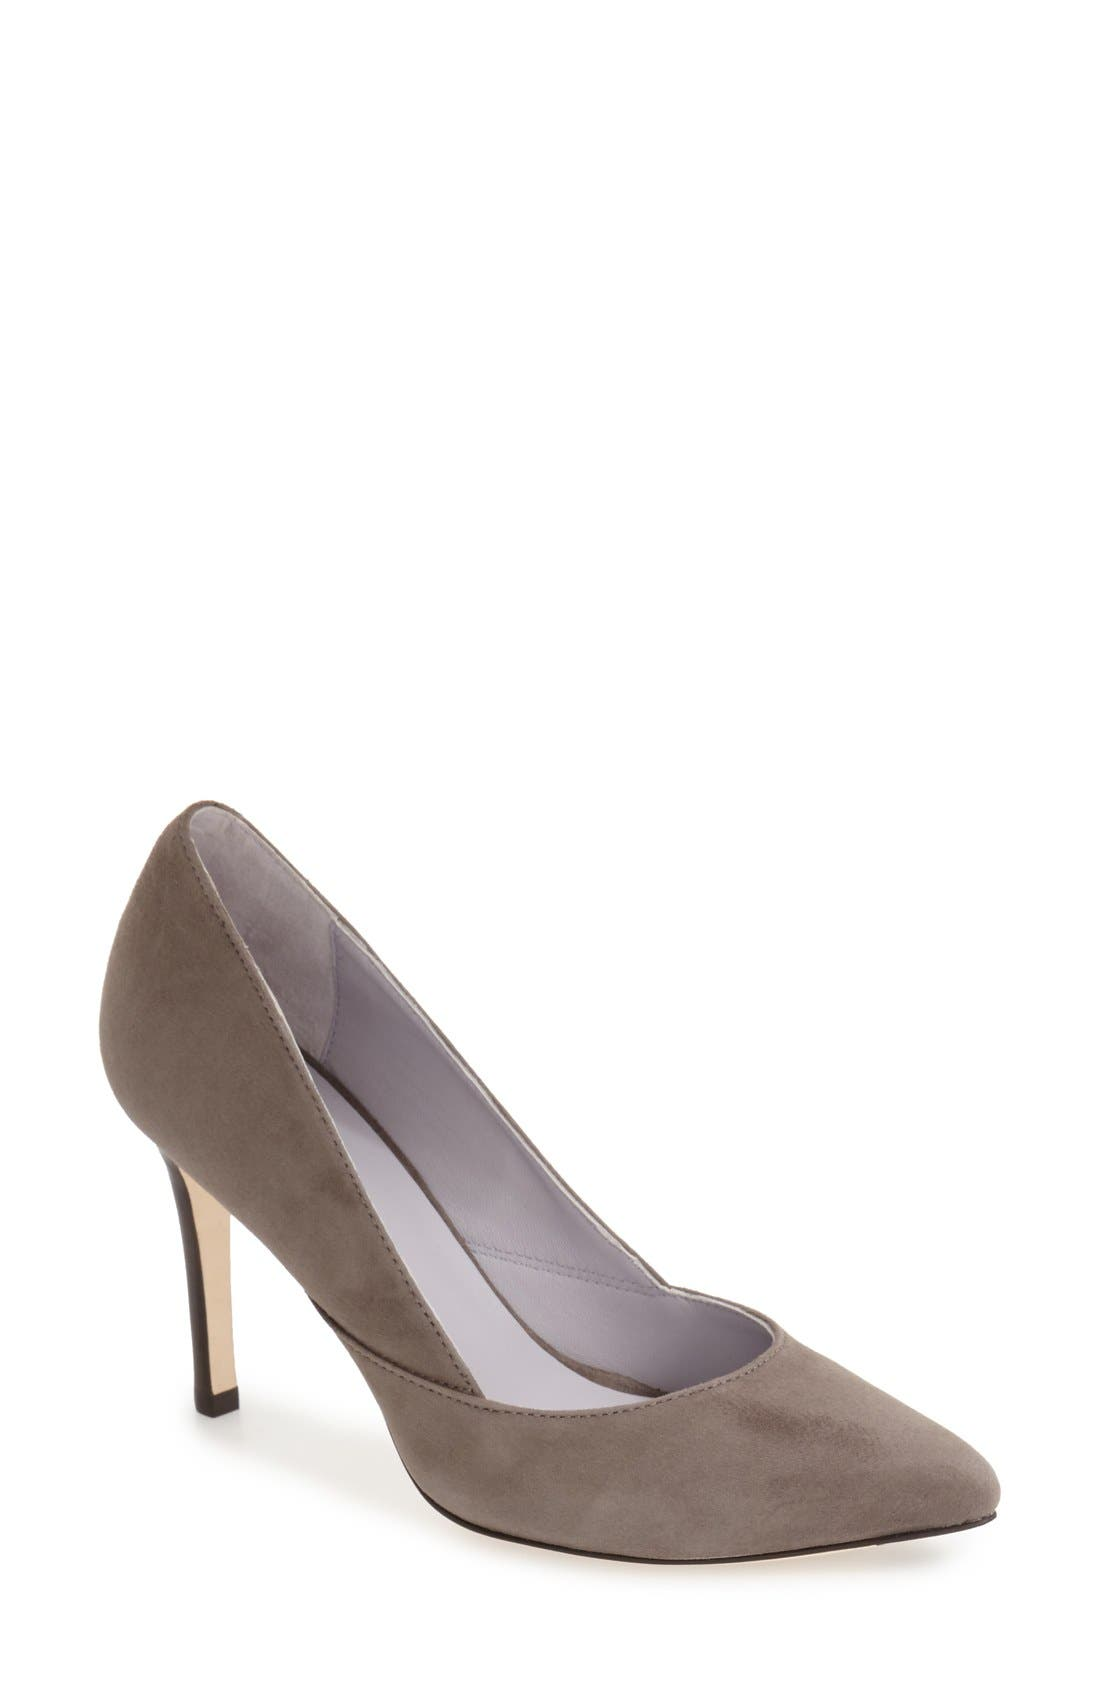 'Vanessa' Pointy Toe Leather Pump,                             Main thumbnail 3, color,